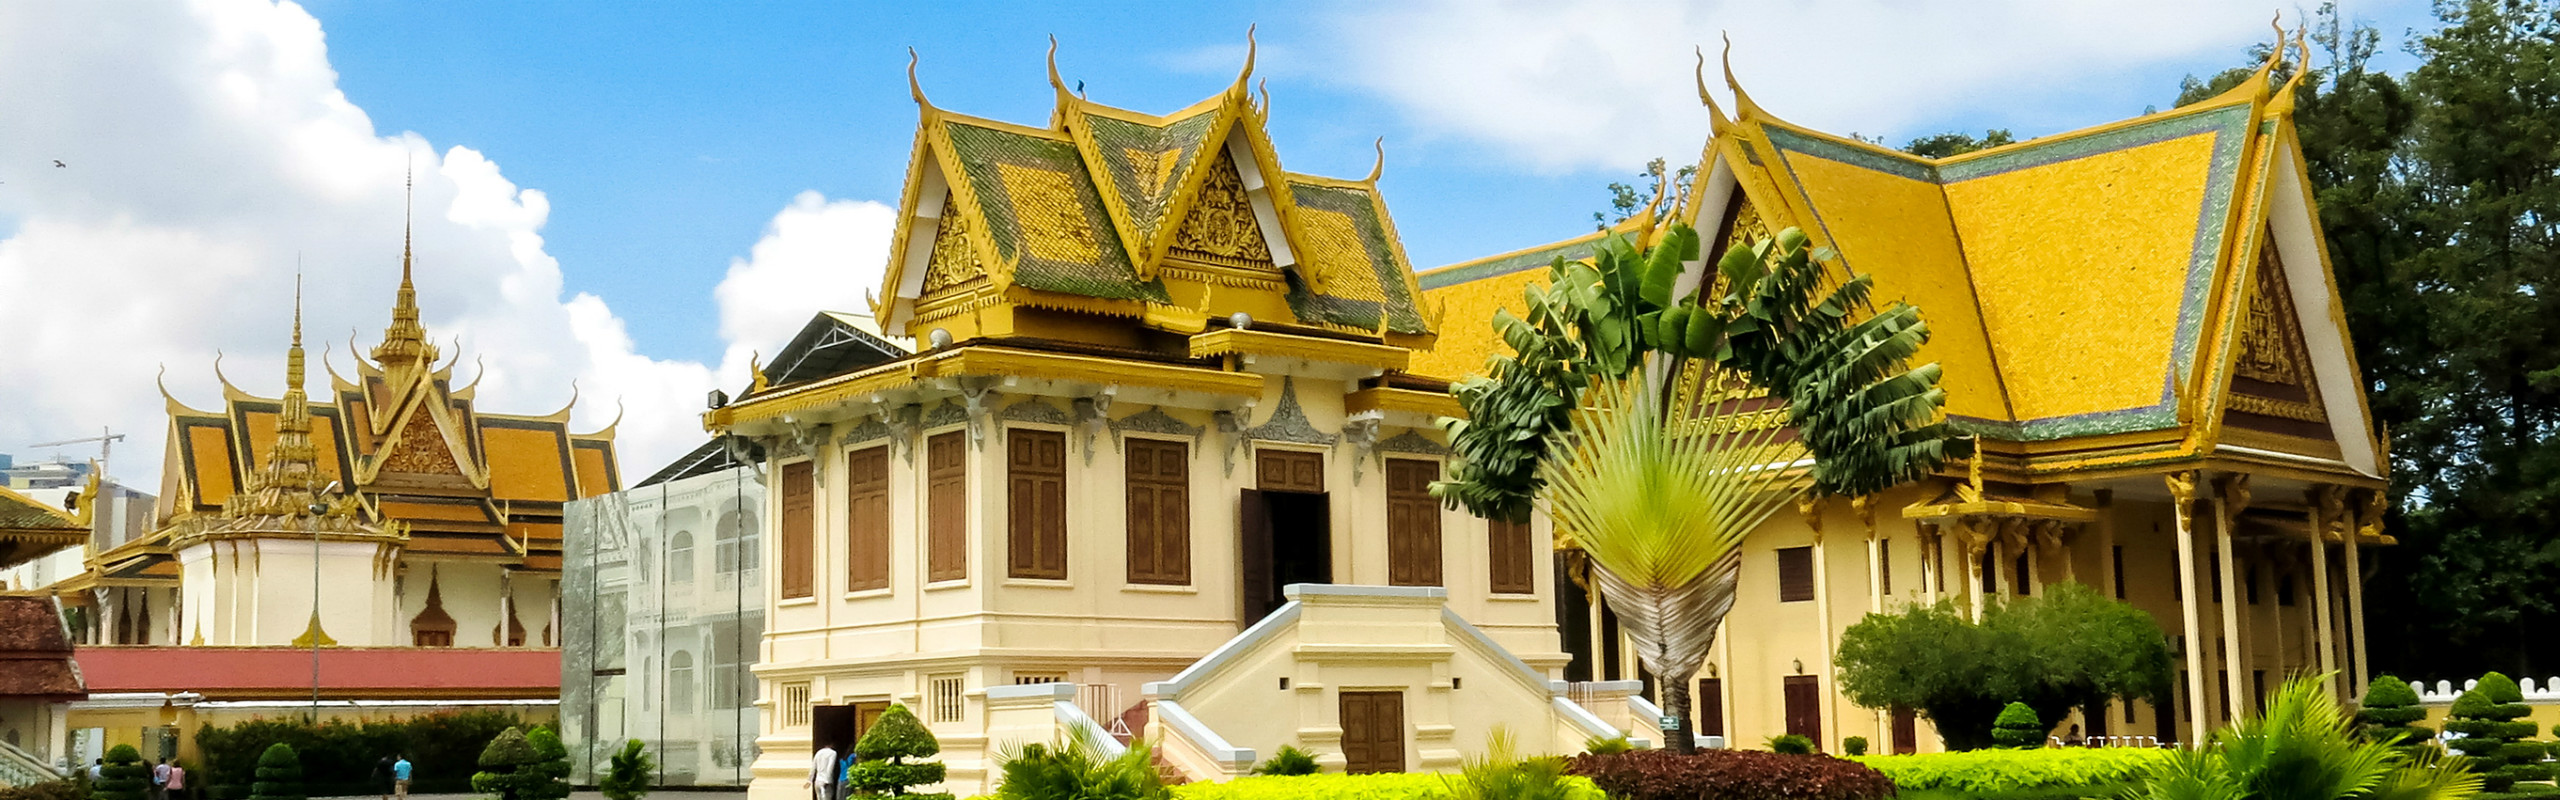 July Weather in Cambodia: July Travel Guide for Cambodia